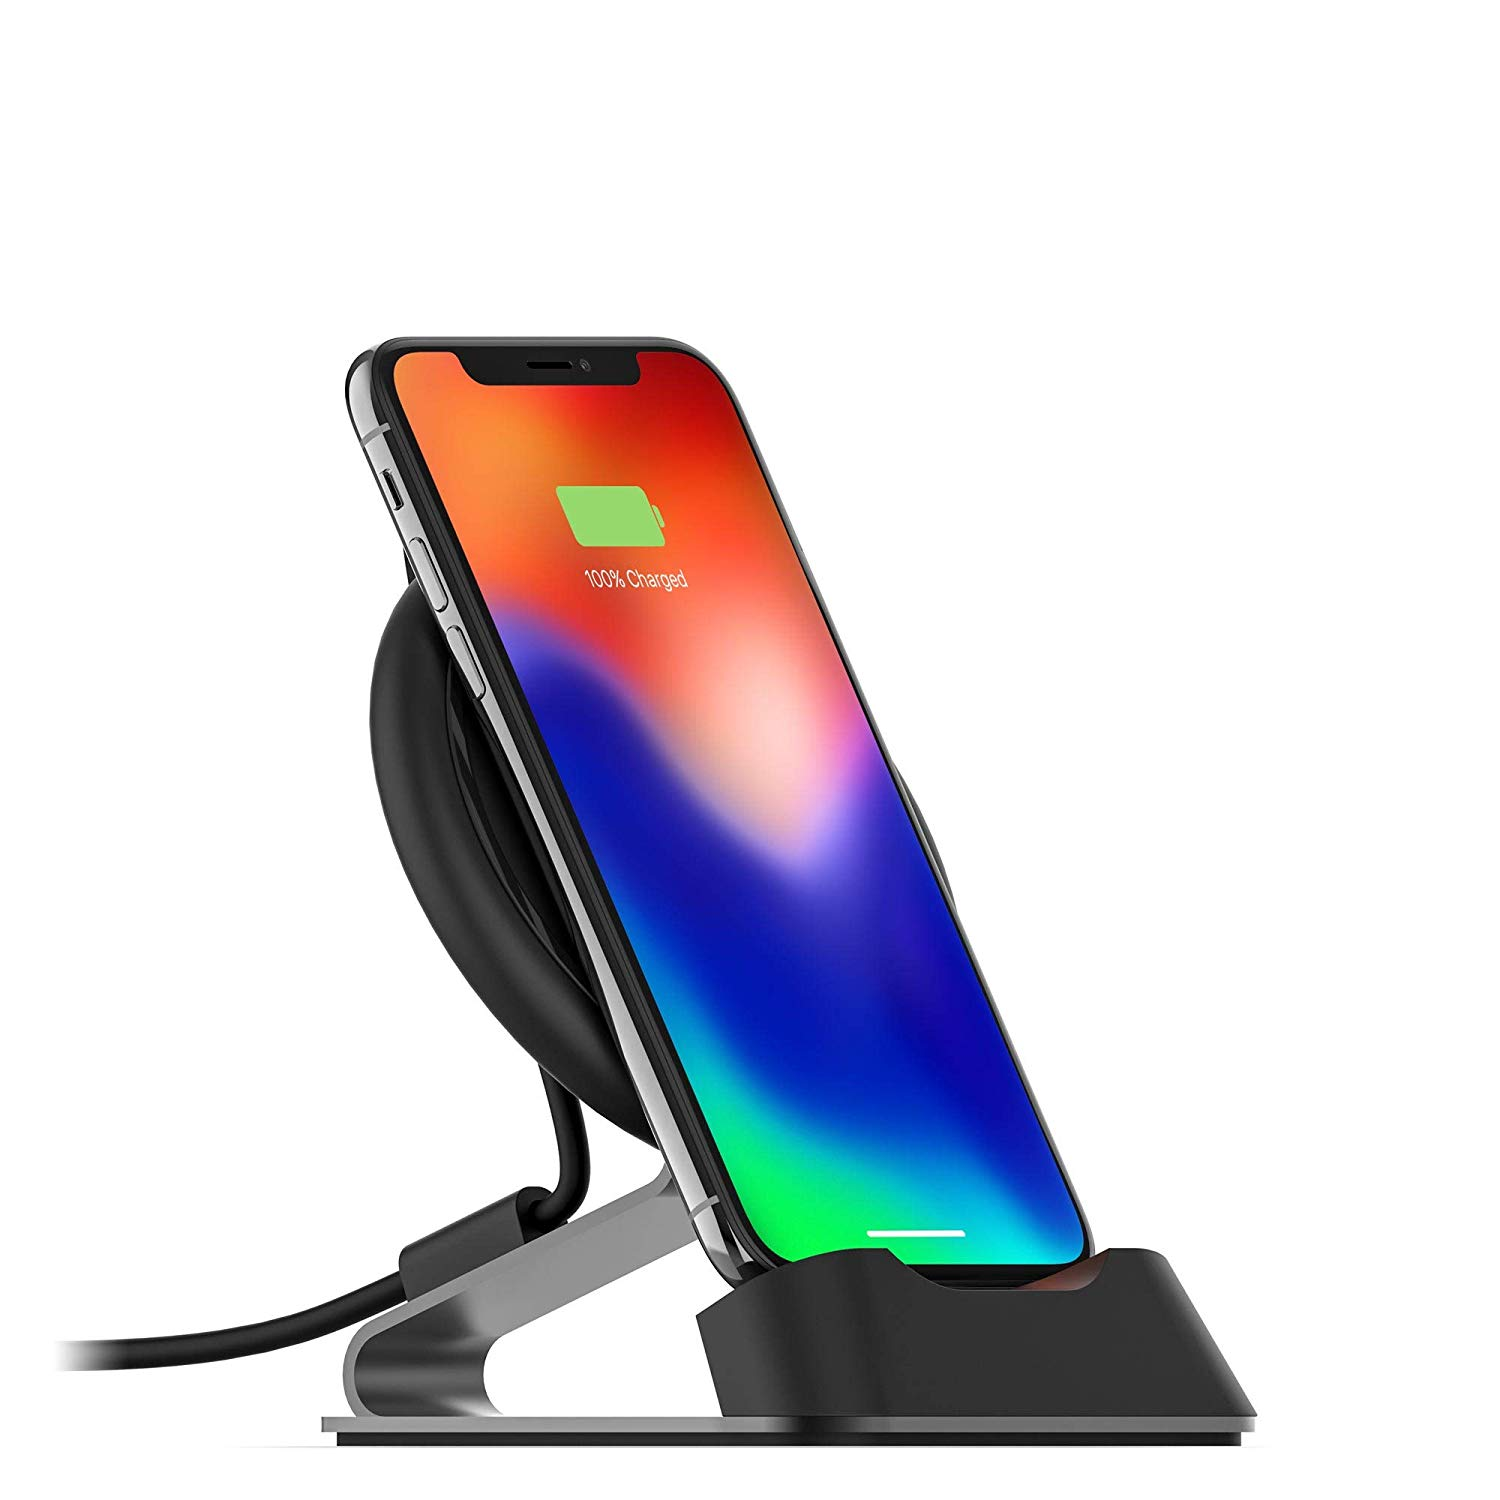 Mophie Wireless Charger Stream Desk Stand For Iphone Xs X 11 11 Pro Max Max Xr 8 8 Plus Samsung Tek Shanghai Mophie universal wireless charger charging car vent mount phone holder black. mophie wireless charger stream desk stand for iphone xs x 11 11 pro max max xr 8 8 plus samsung